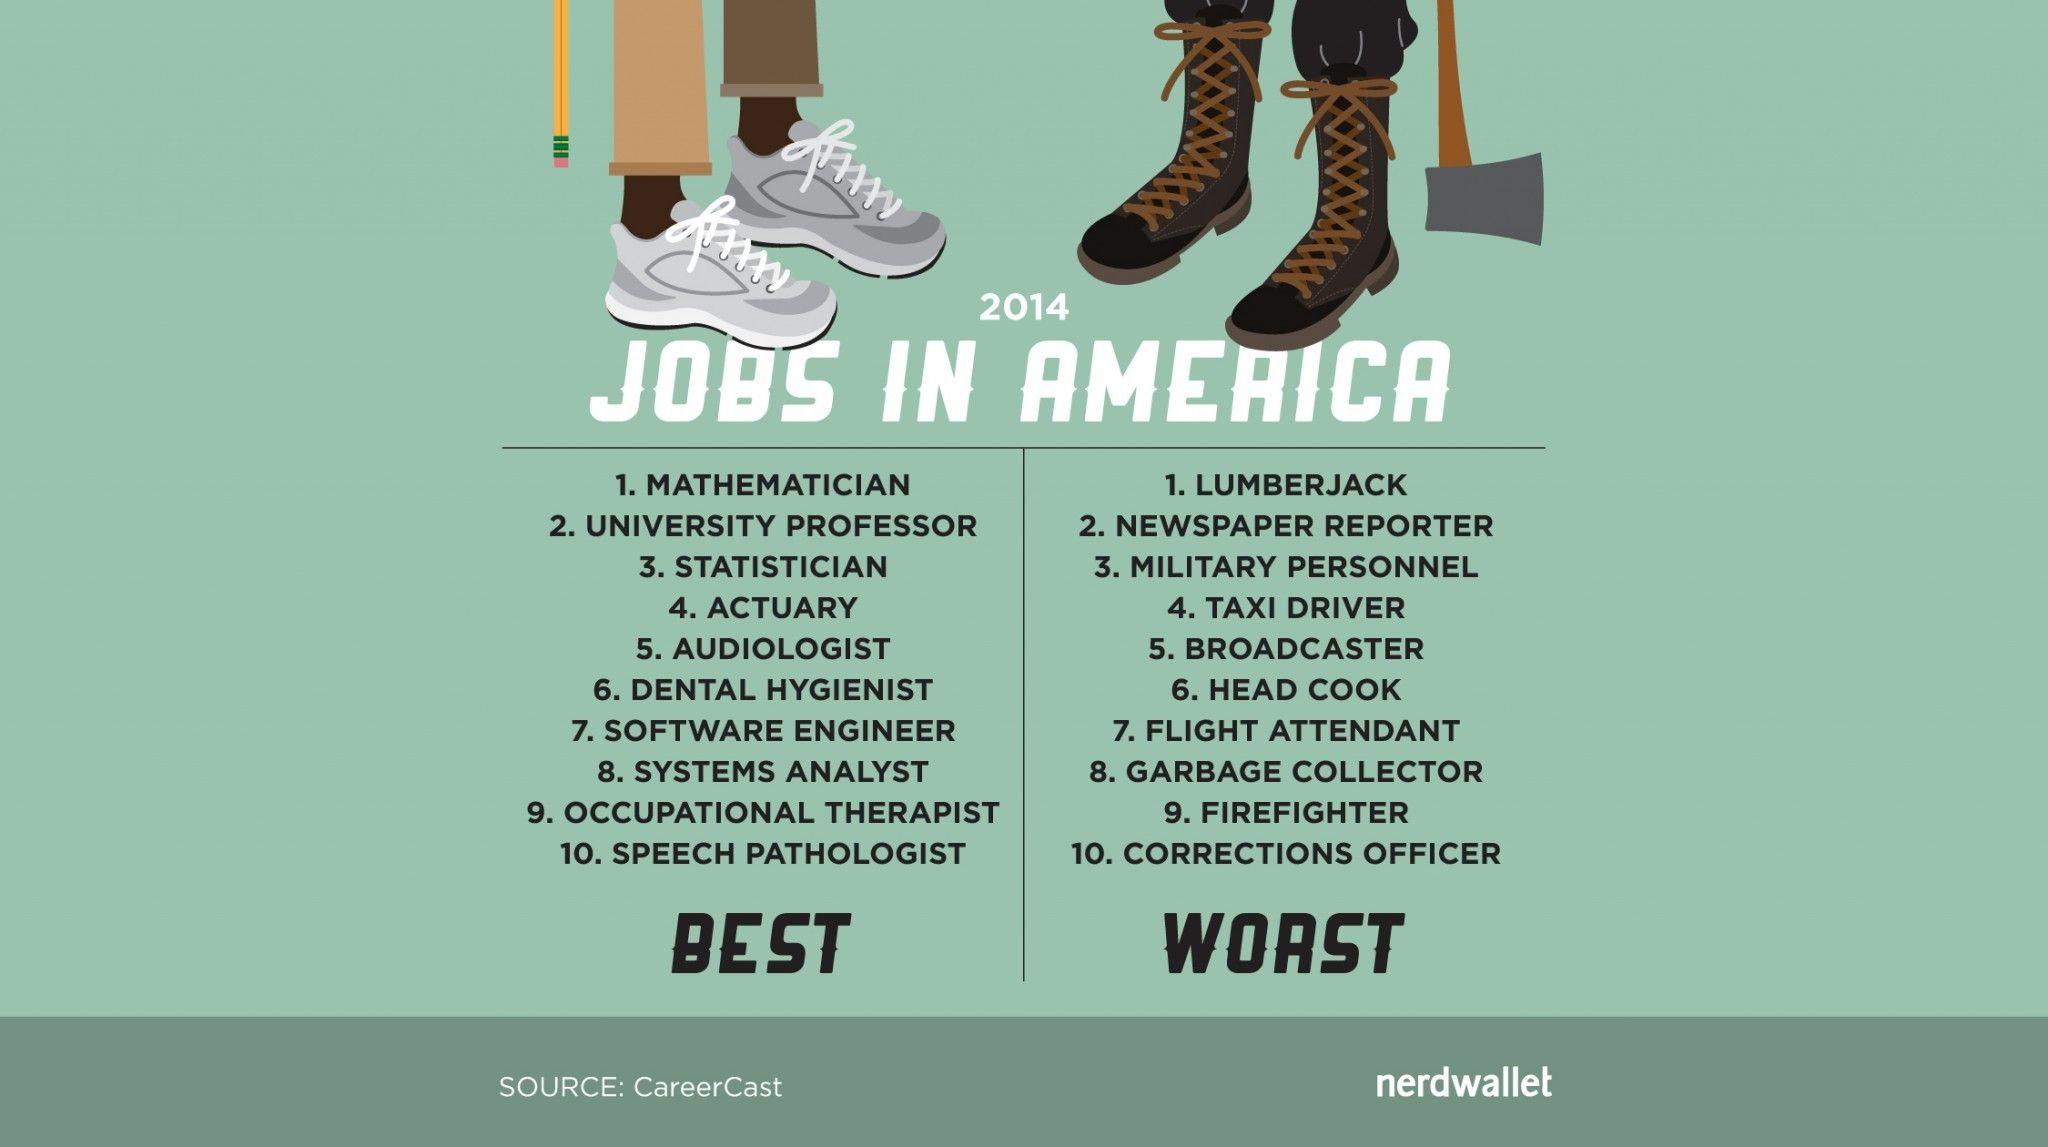 The Best And Worst Jobs In America Are ...